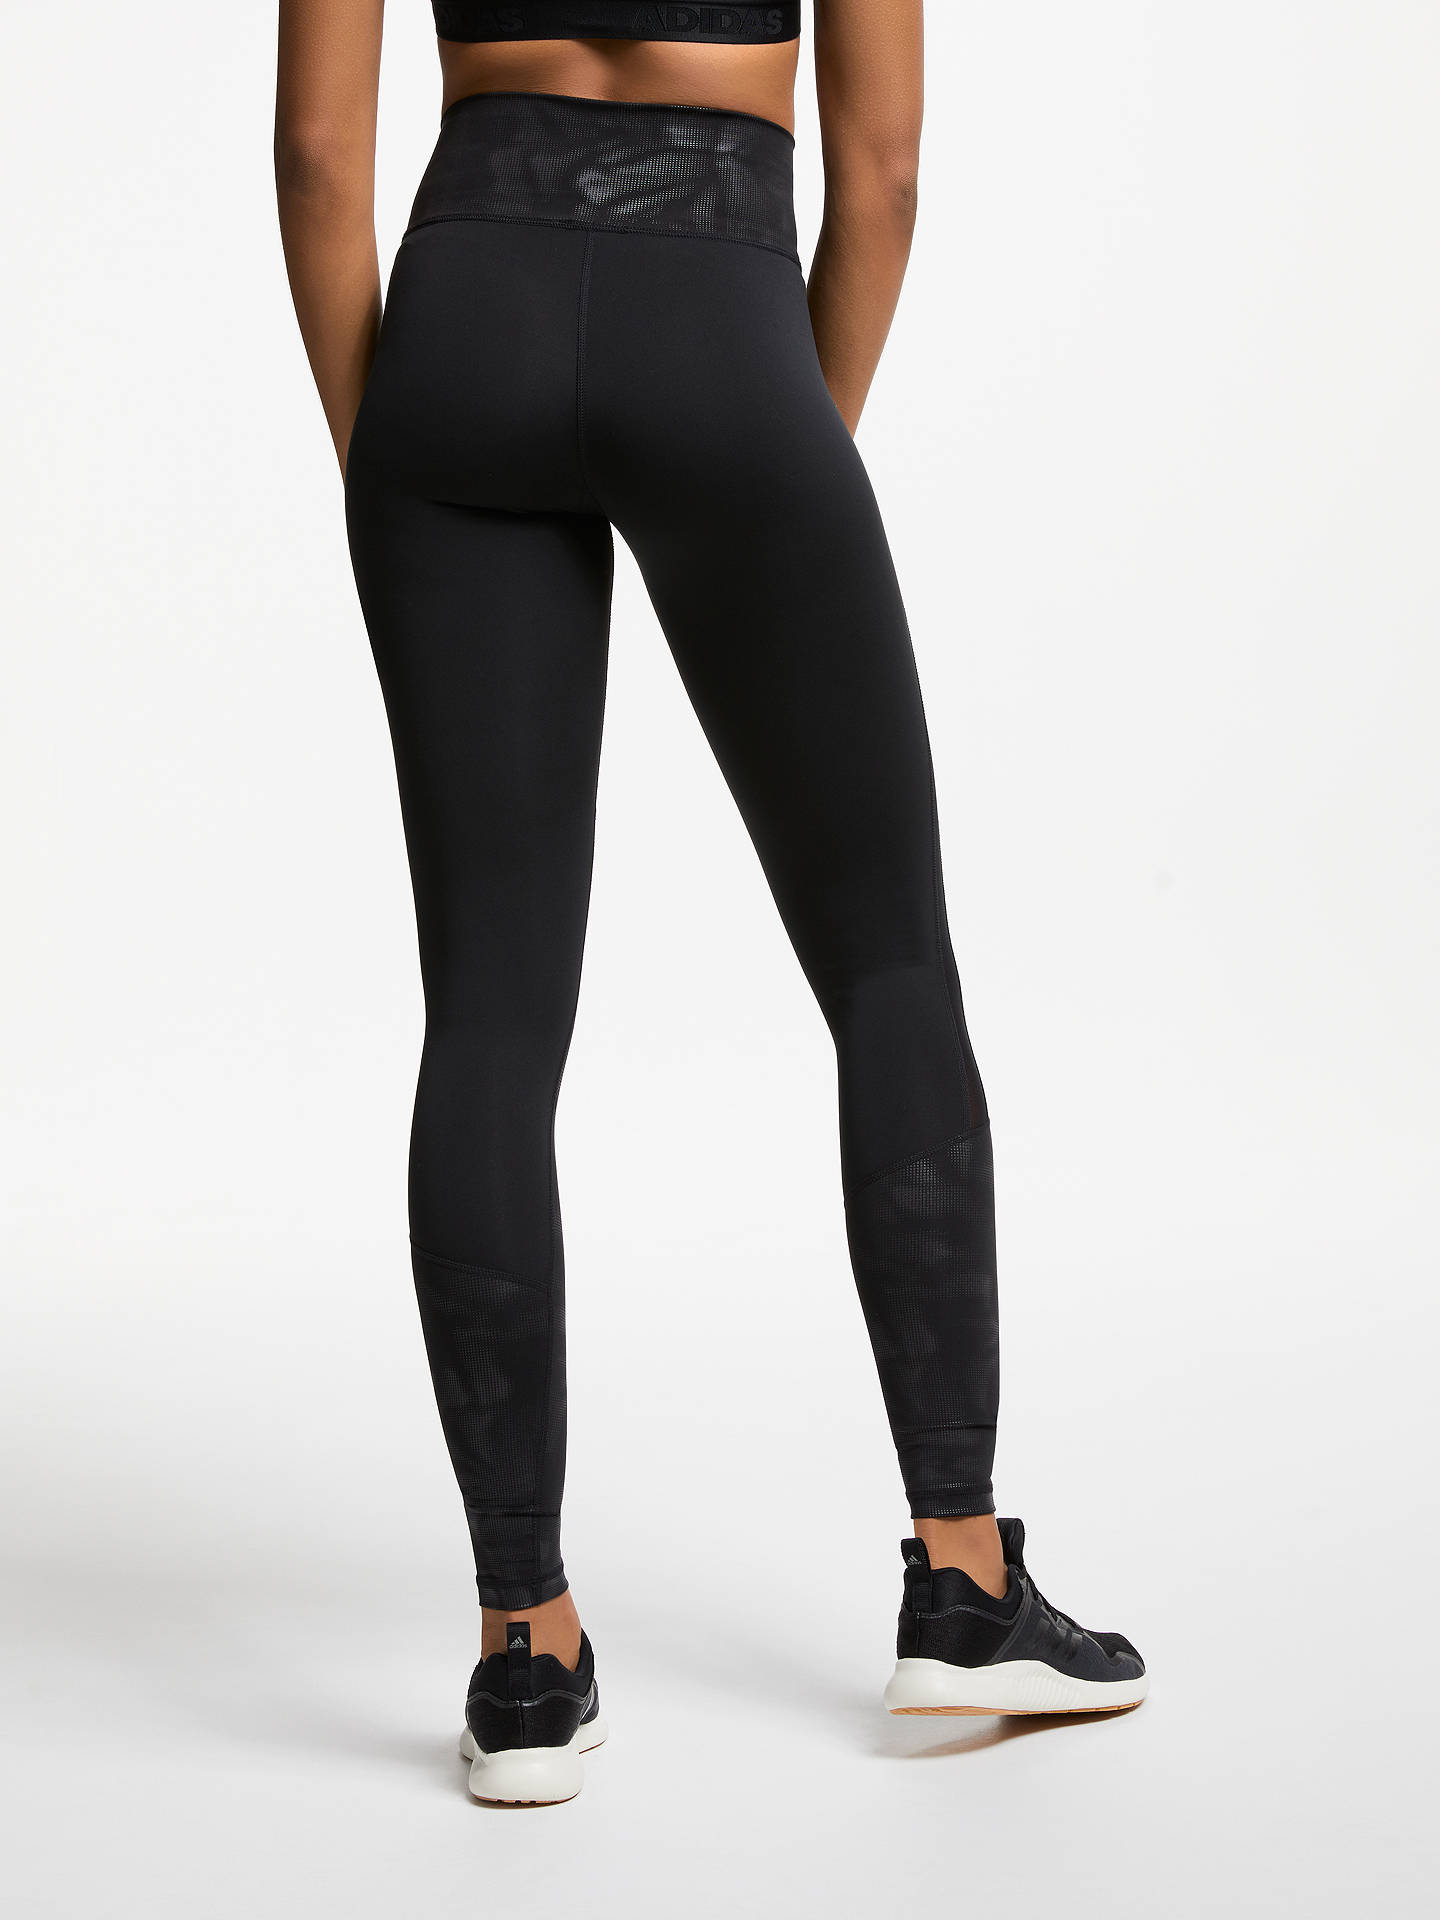 Buyadidas Design 2 Move High-Rise Tights, Black/Print, M Online at johnlewis.com